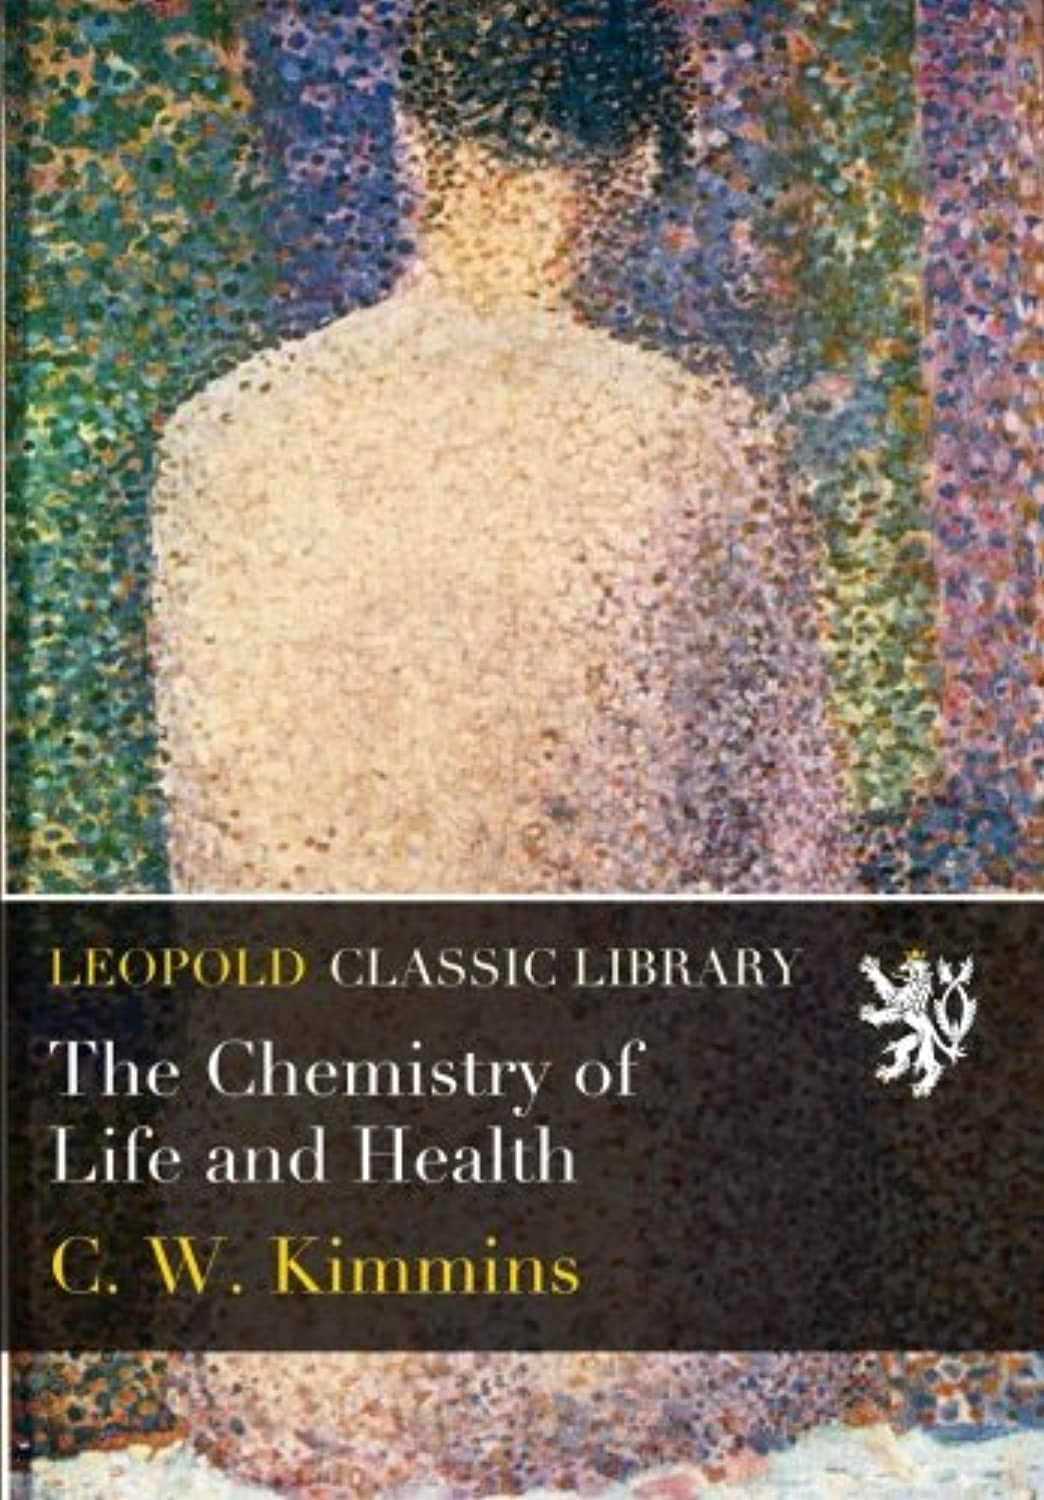 The Chemistry of Life and Health